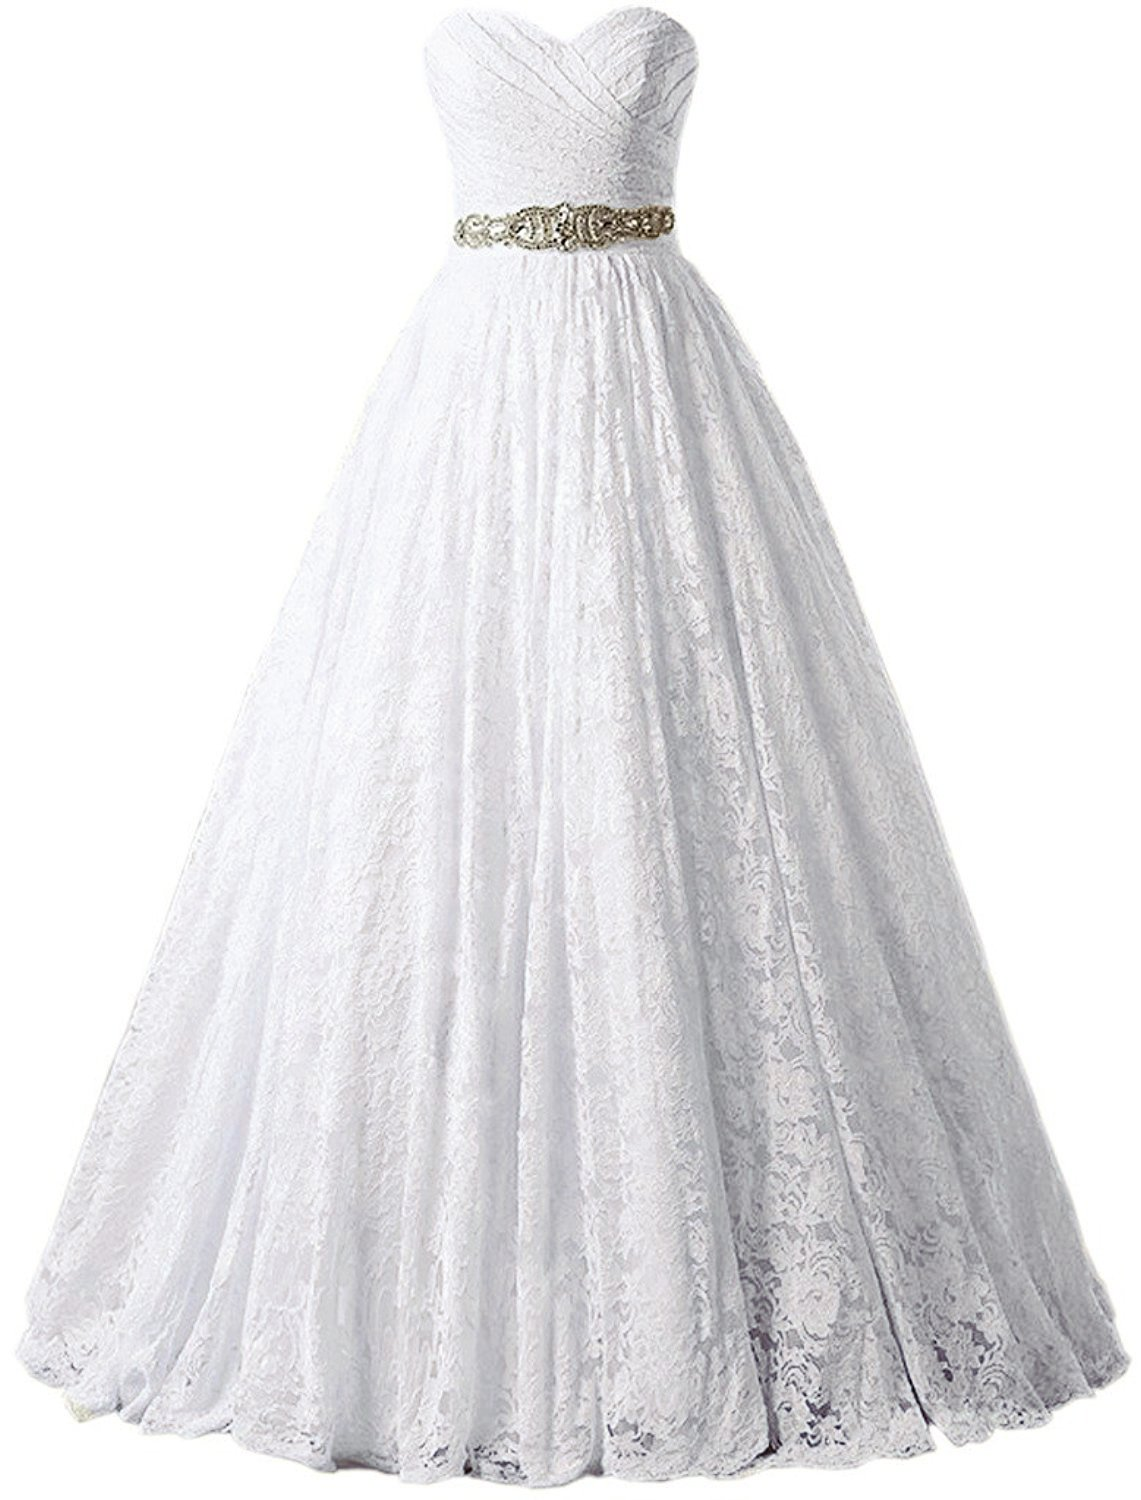 Solovedress Women's Ball Gown lace Princess Wedding Dress 2017 Sash Beaded Bridal Evening Gown (US 16,White)